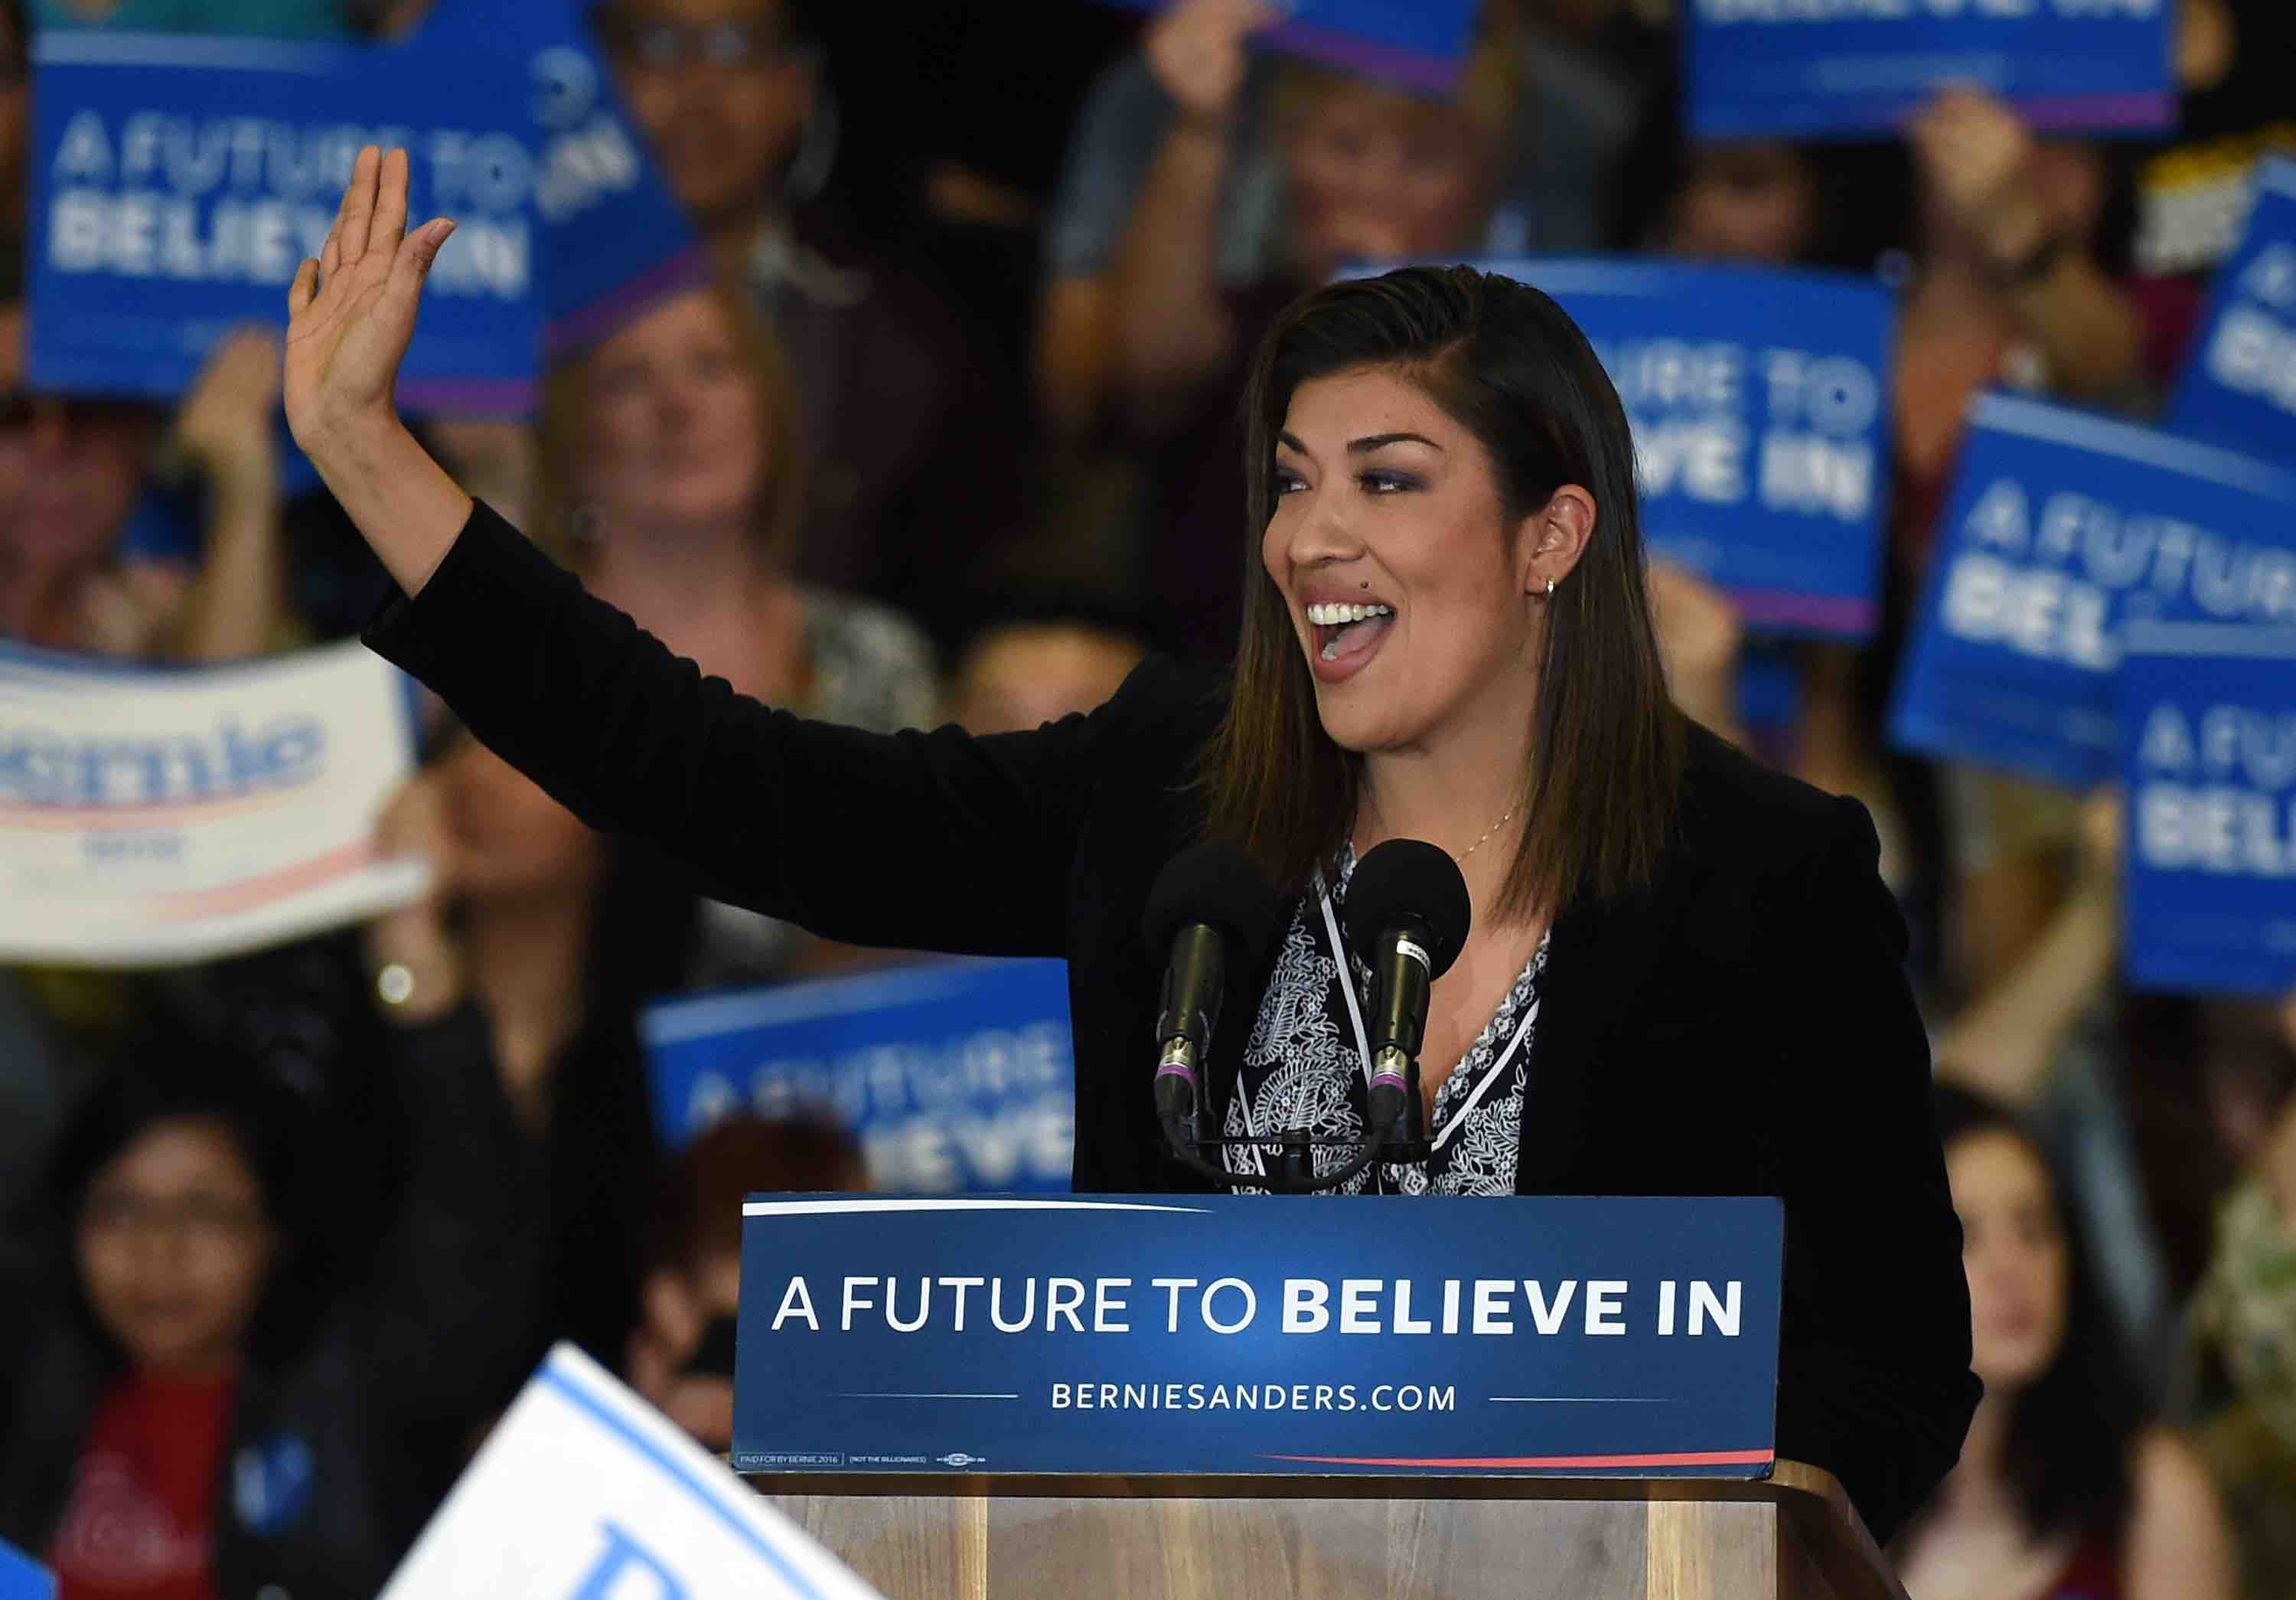 Nevada Politician Lucy Flores Speaks Out About Joe Biden's Inappropriate Behavior